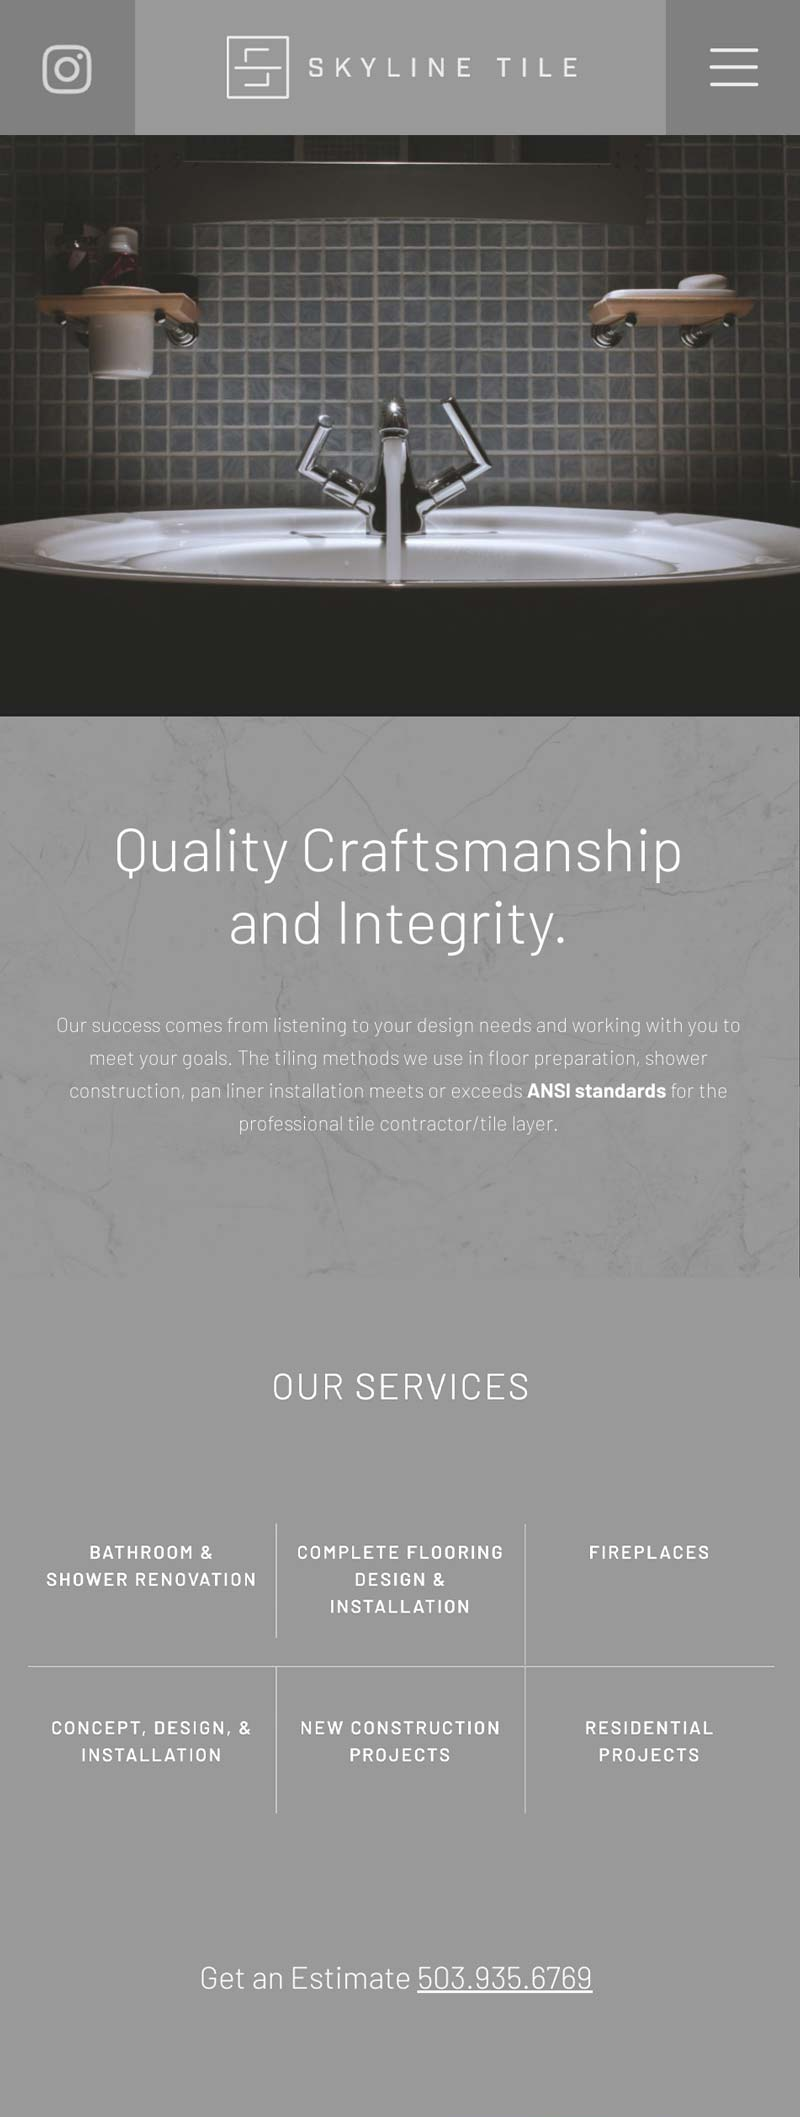 Mobile Tile and Remodling Web Design in Idaho